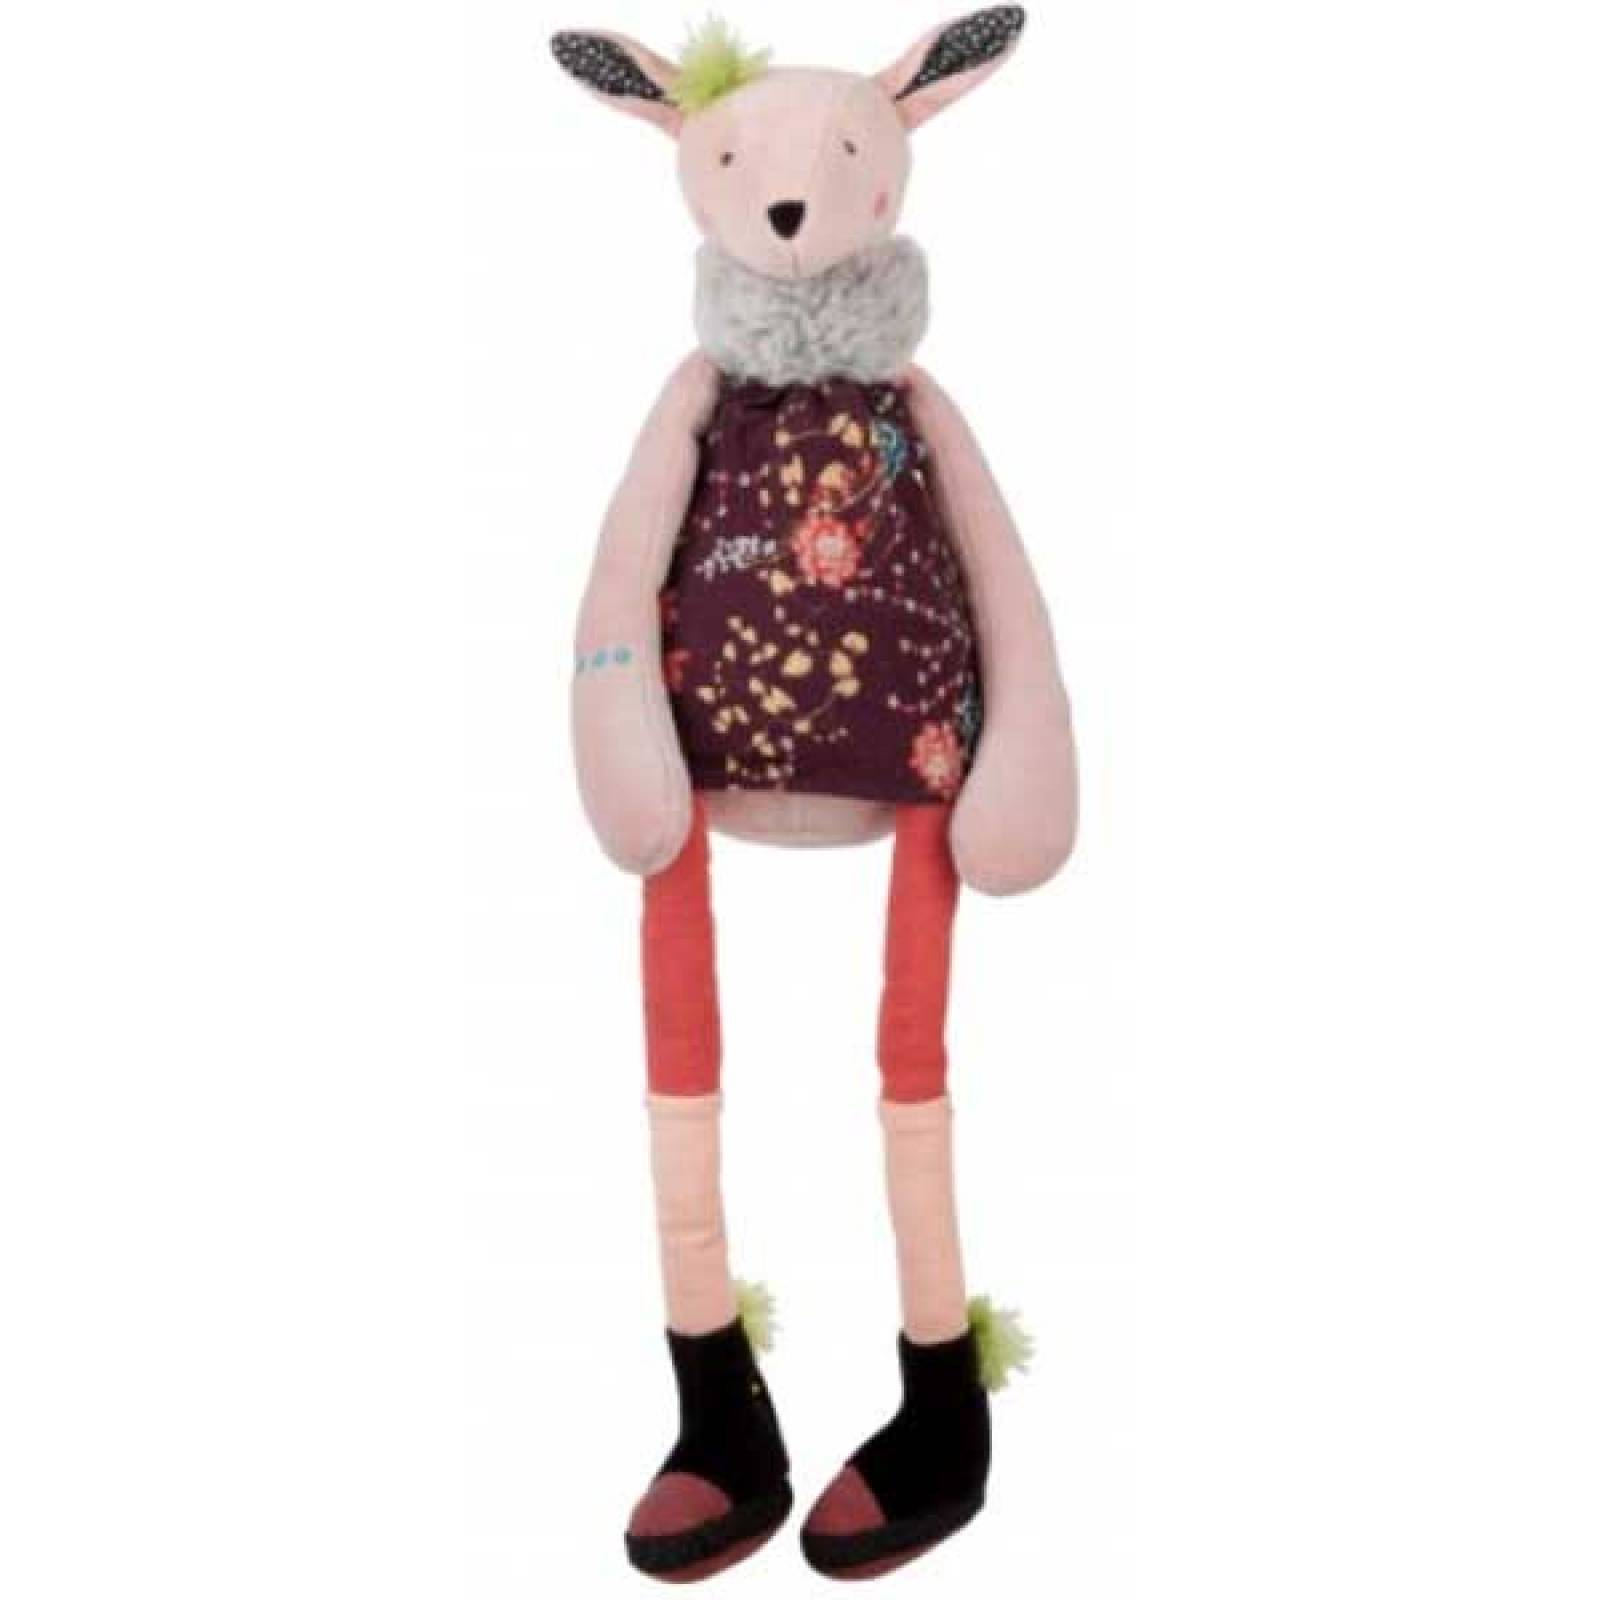 Olive The Deer Soft Toy Moulin Roty 12mth+